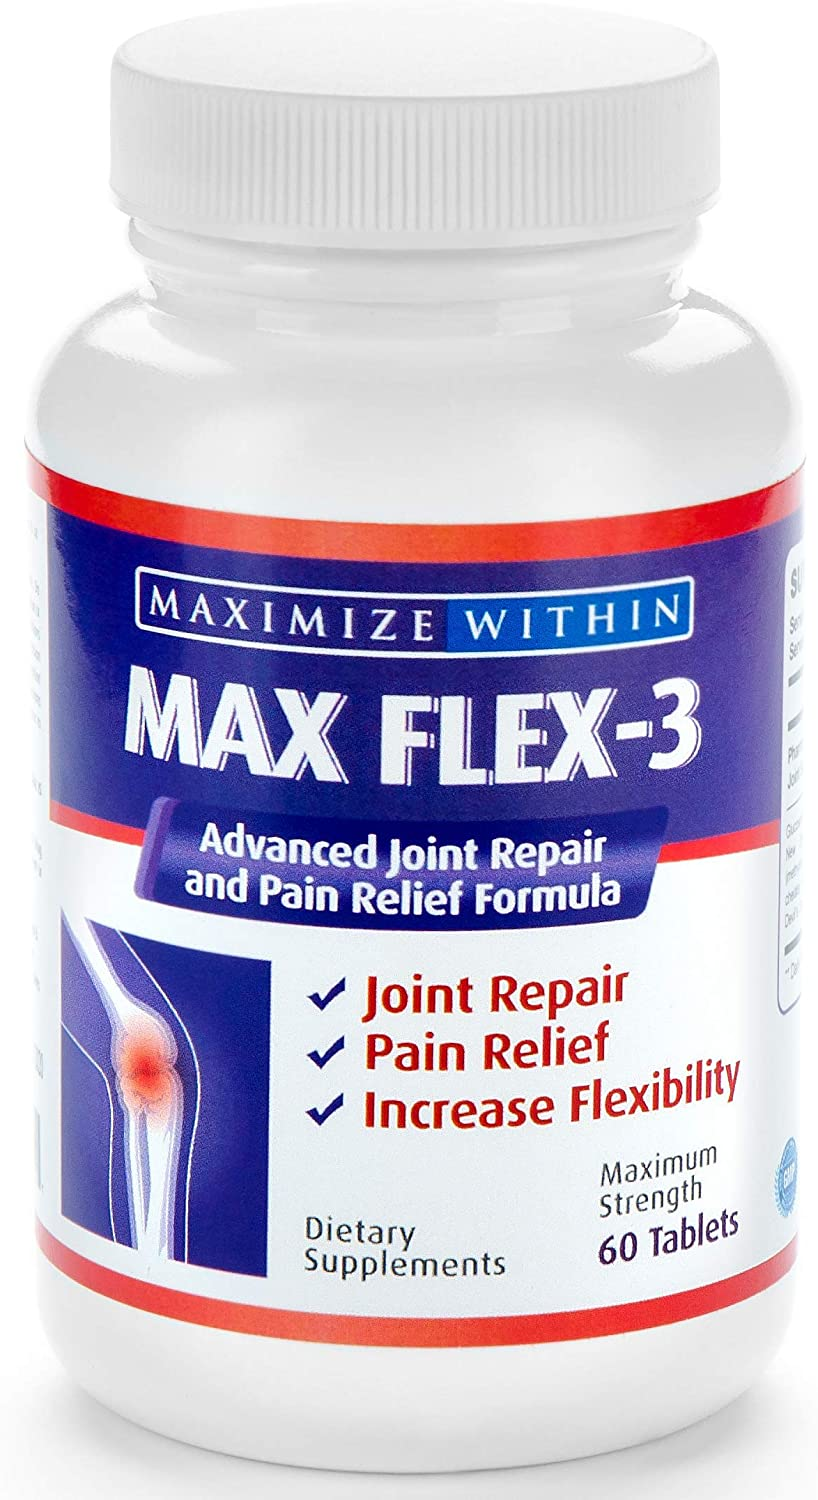 Max Flex-3-Advanced Joint Repair & Pain Relief Formula with Green Lipped Mussel. Support Treatment:Back Pain,Shin Splints,Arthritis,Tennis Elbow-Manage Knee,Hip&Shoulder Joint Flexibility MONTH SUPPLY: Health & Personal Care